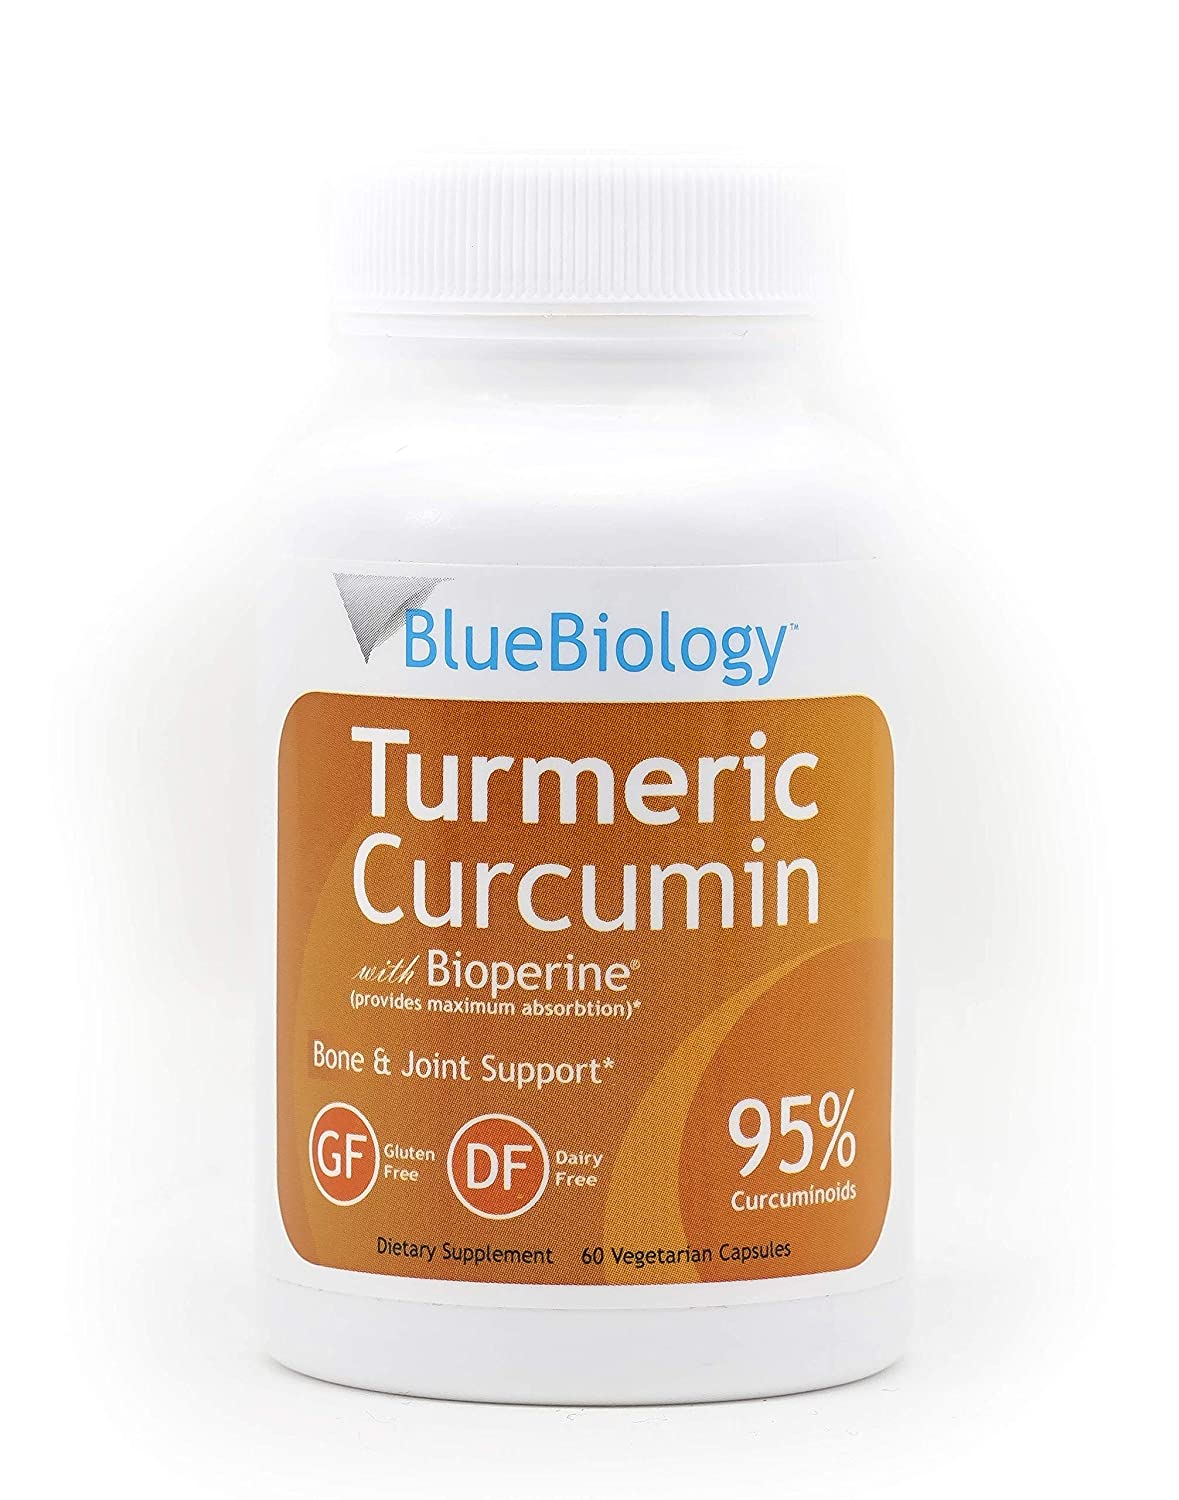 BlueBiology Turmeric Curcumin with Bioperine Extract Enhanced Absorption – 95 Curcuminoids – Highest Potency – Gluten Free – Vegan Joint Pain Relief – 60 Capsules